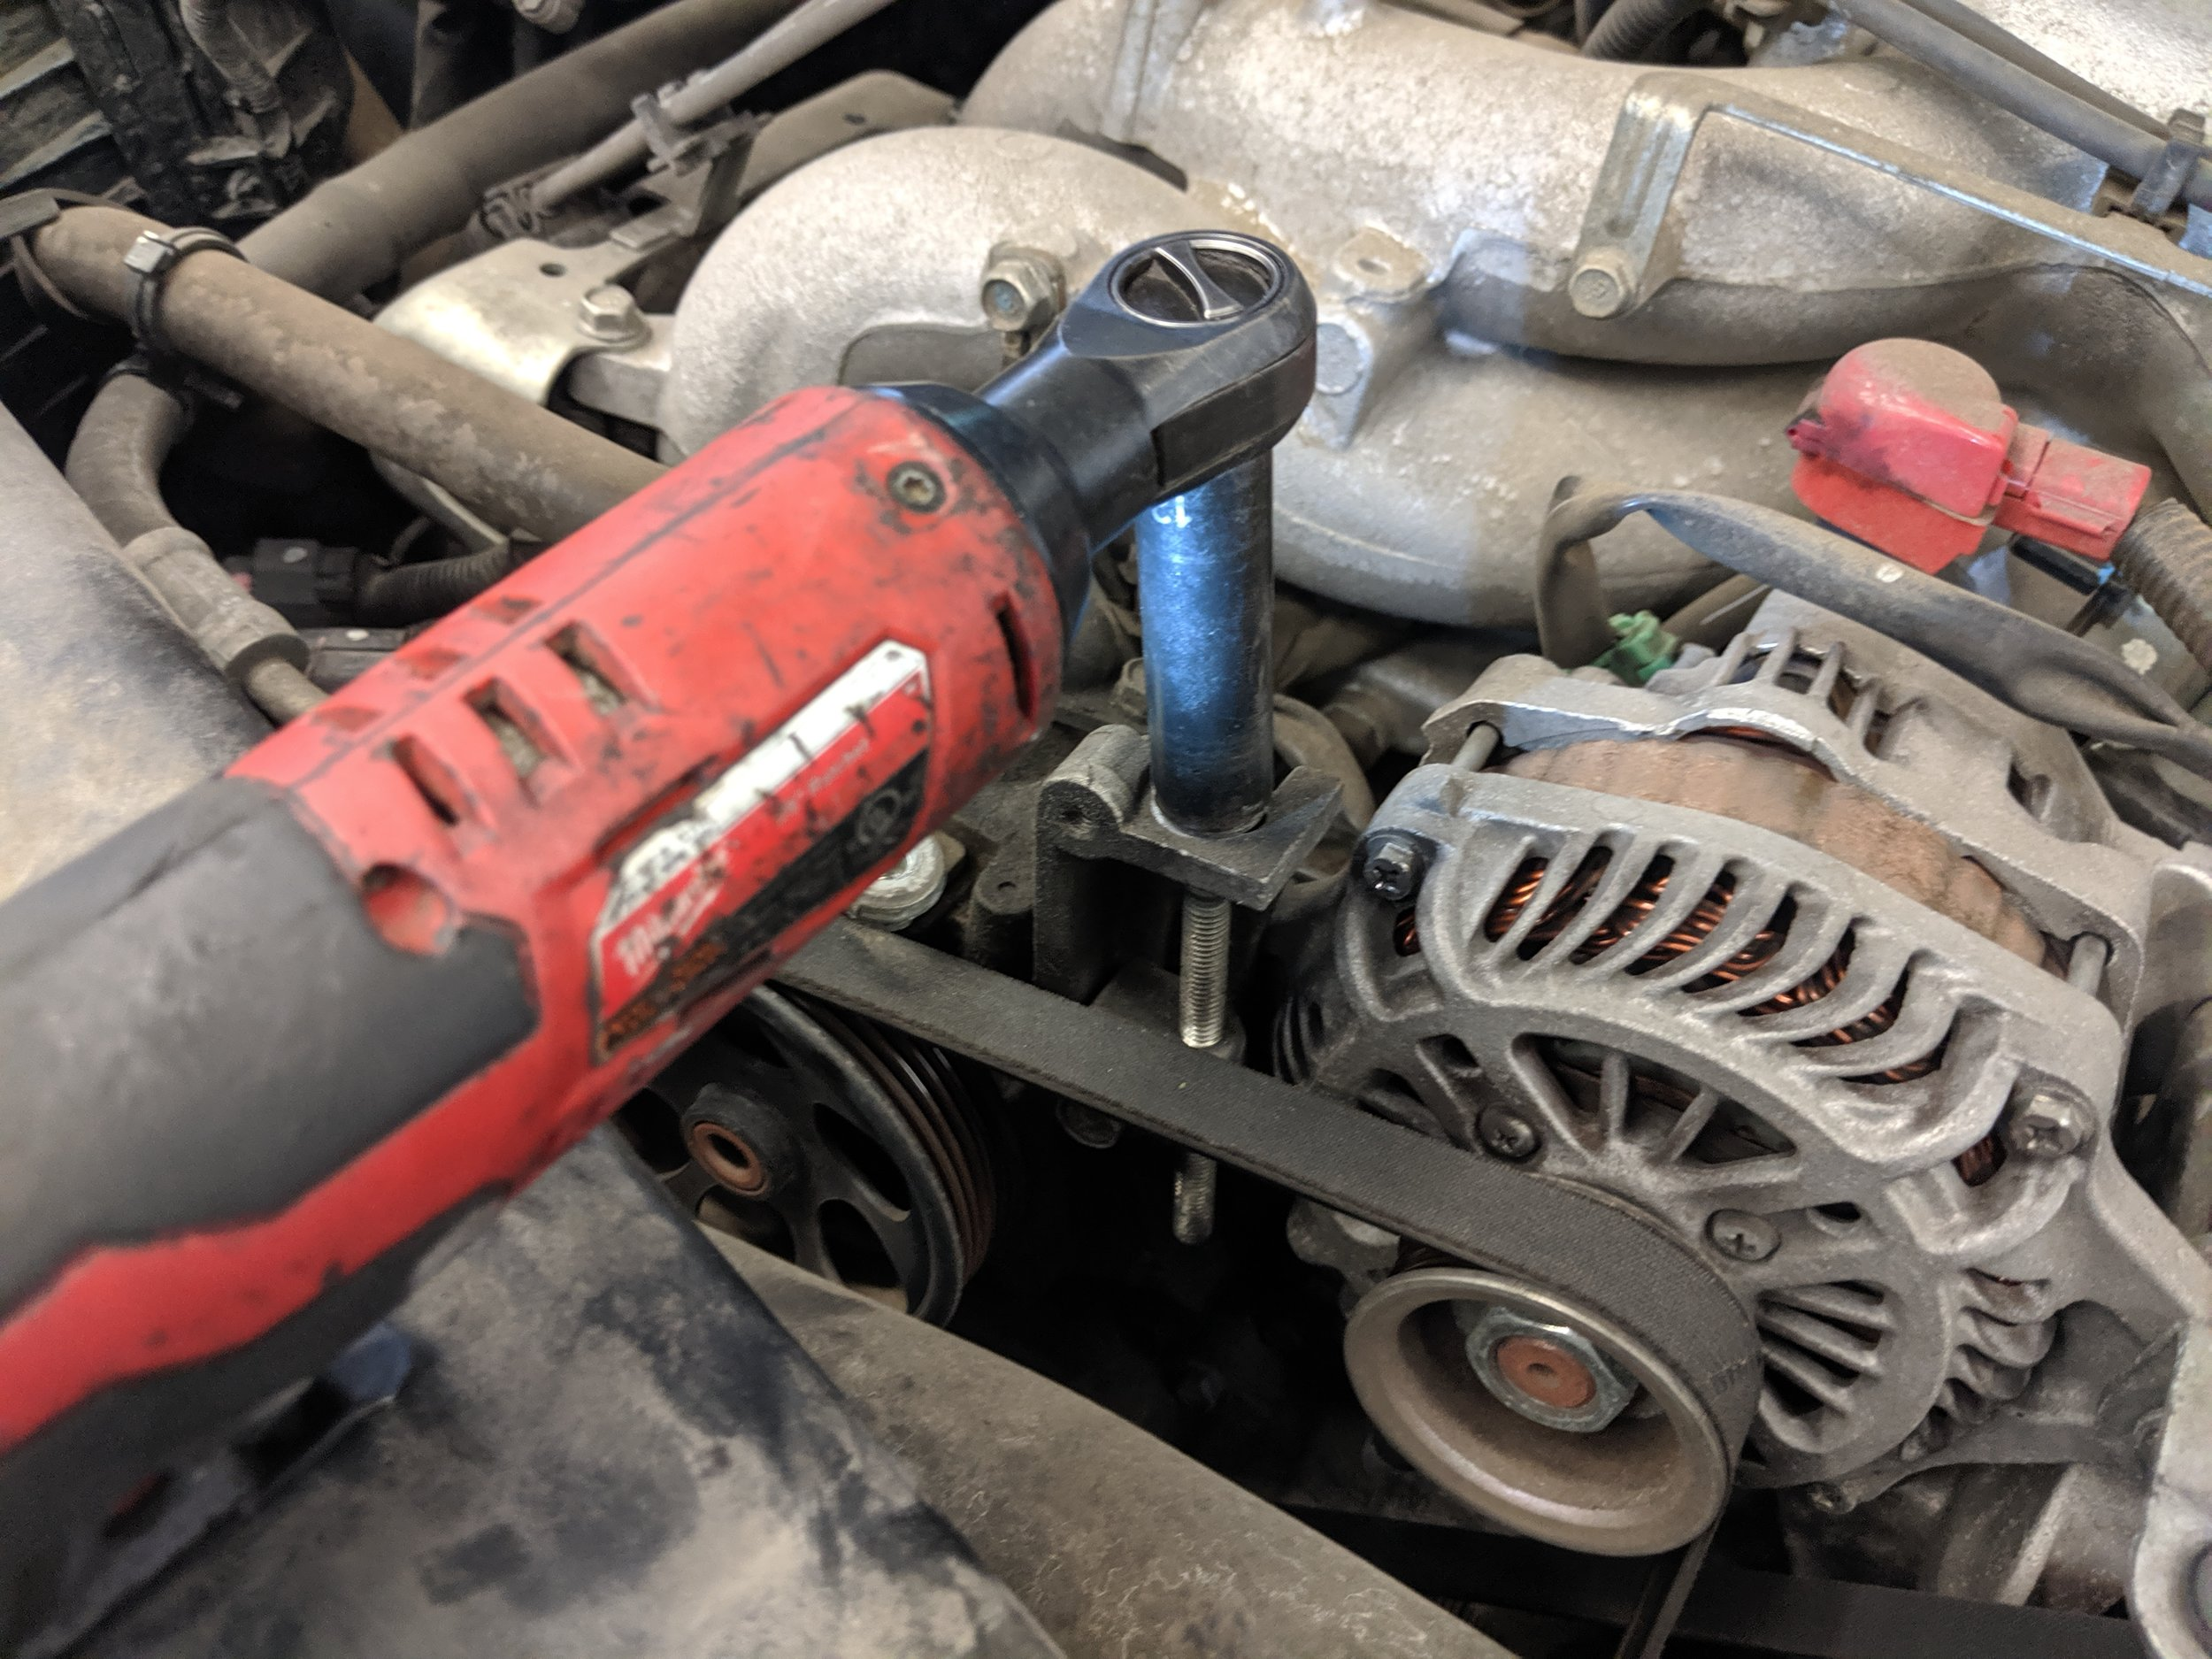 Spinning this bolt out will release the tension from the belt and allow the alternator to sink. This makes removal of the belt possible.  Milwaukee Electric 3/8 ratchet